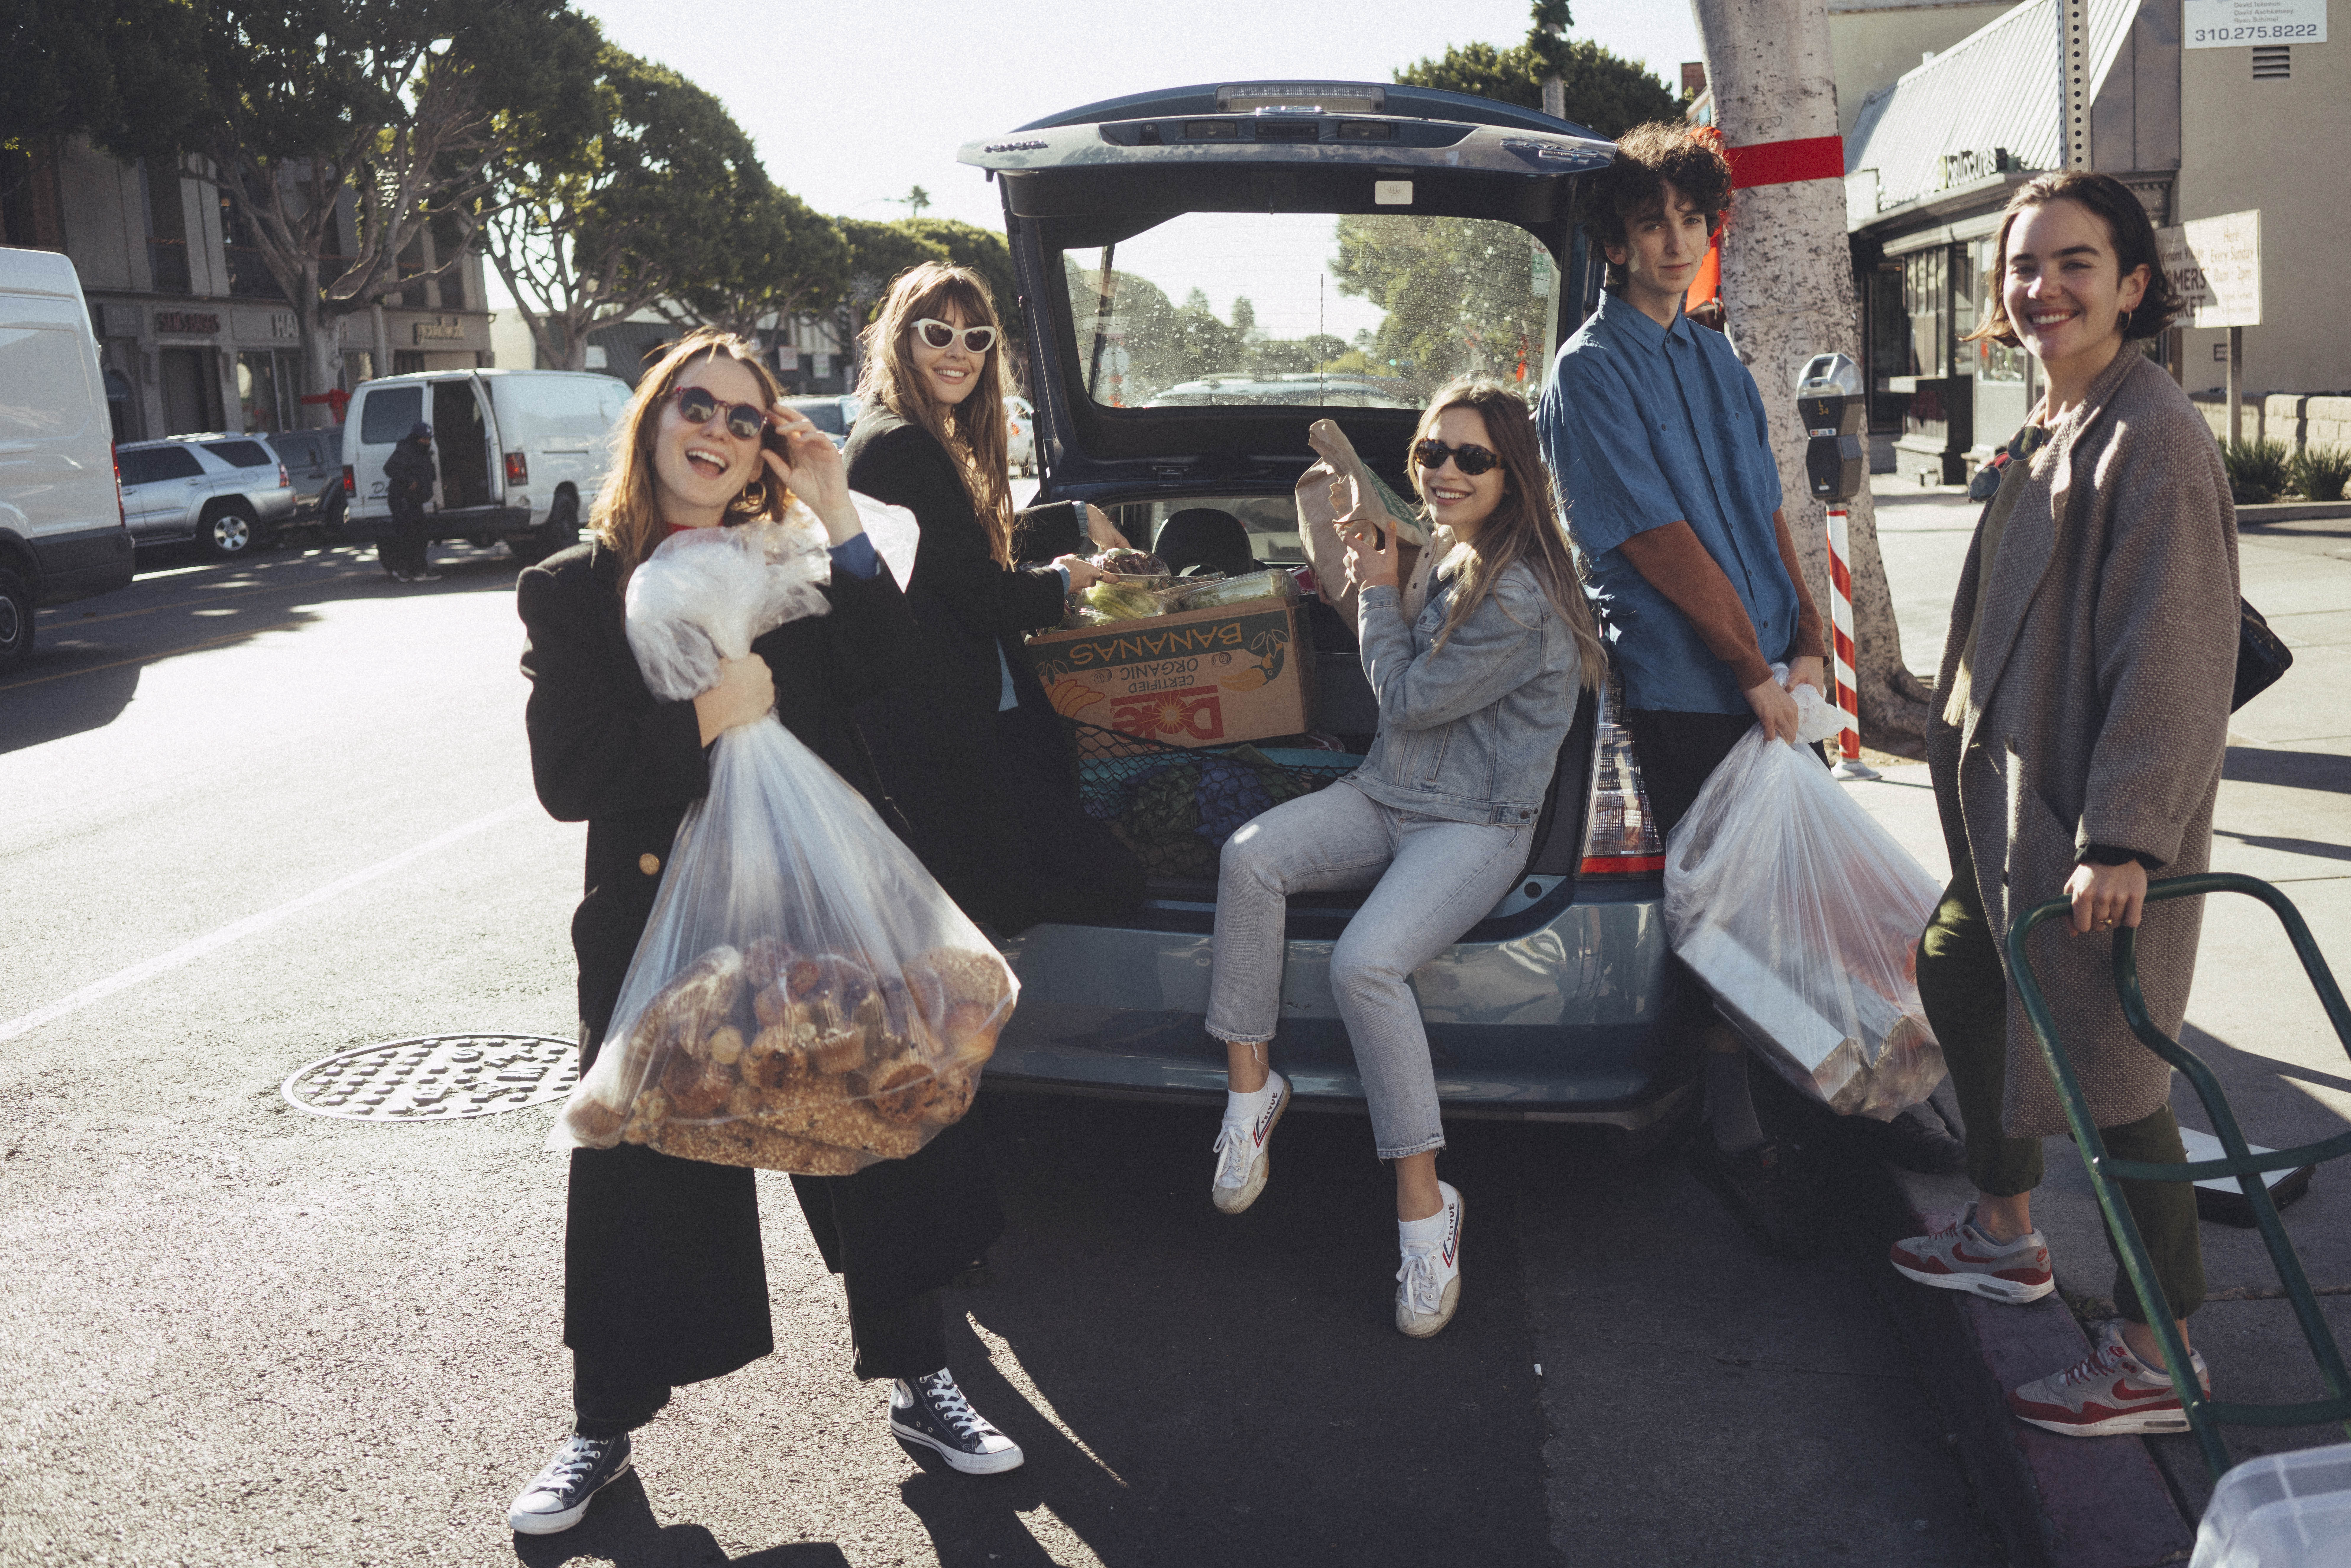 Feeding the homeless & hungry in Los Angeles: How one organization is on track to provide 204,000 meals to those in need by recycling food